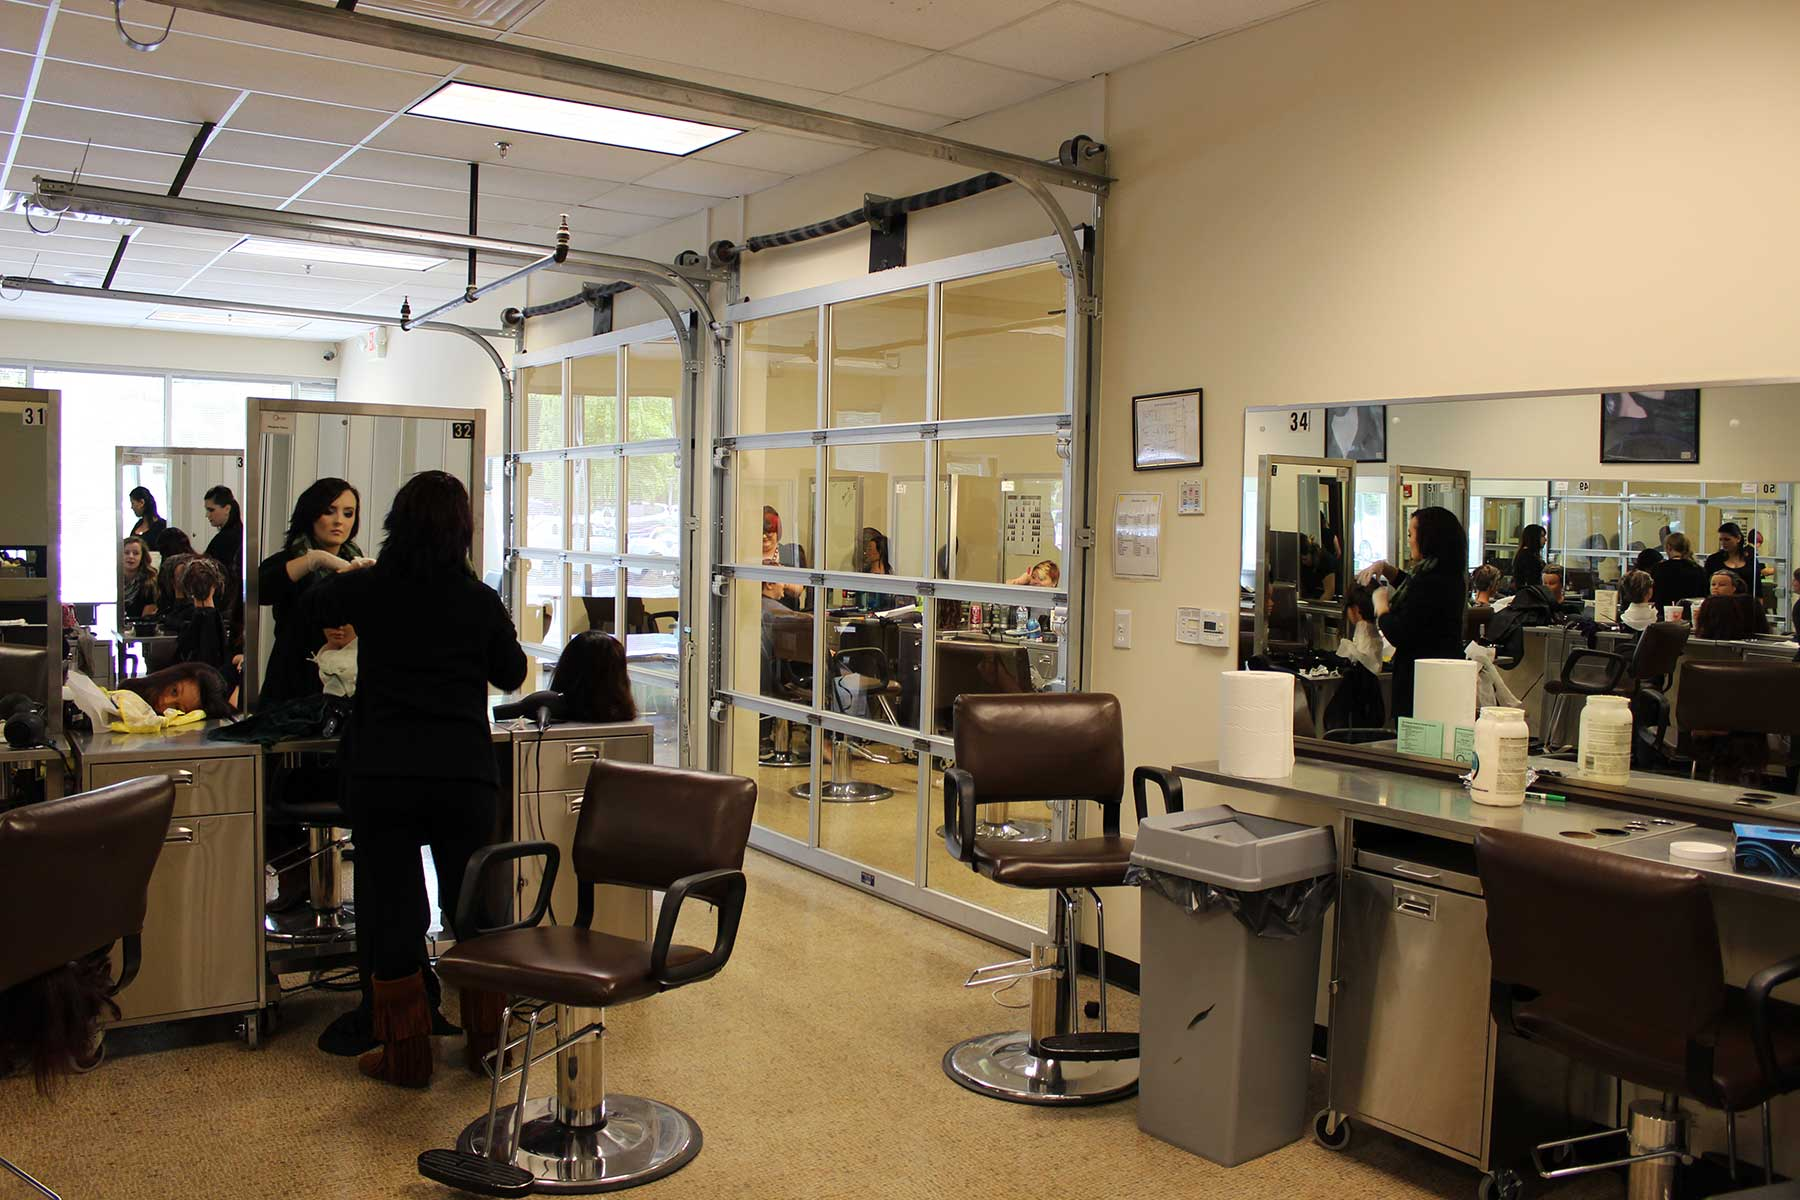 cosmetology program in lawrenceville ga keune academy by